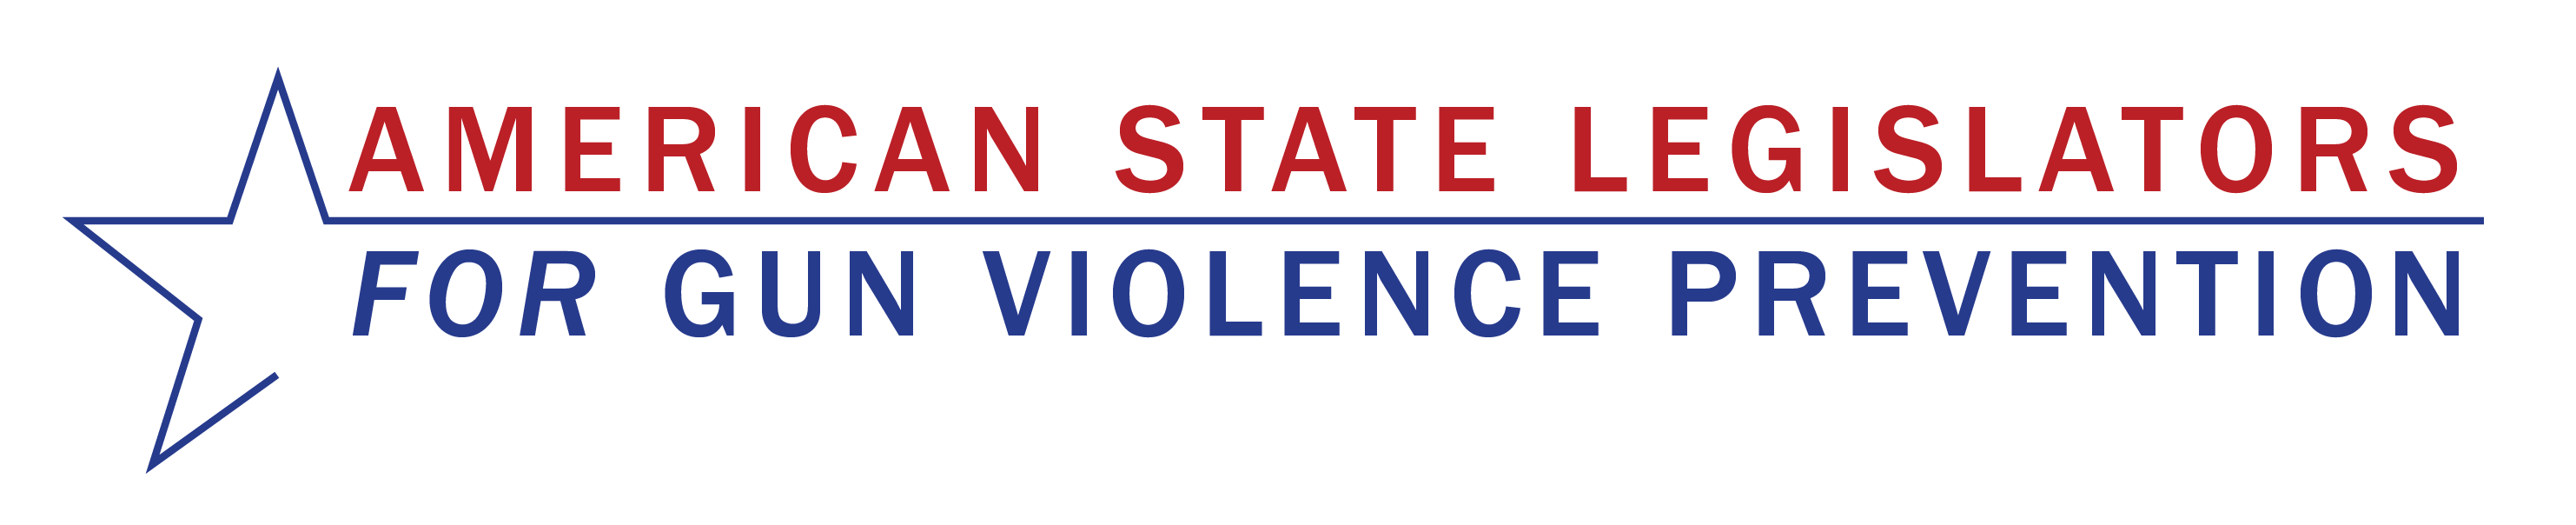 American State Legislators for Gun Violence Prevention